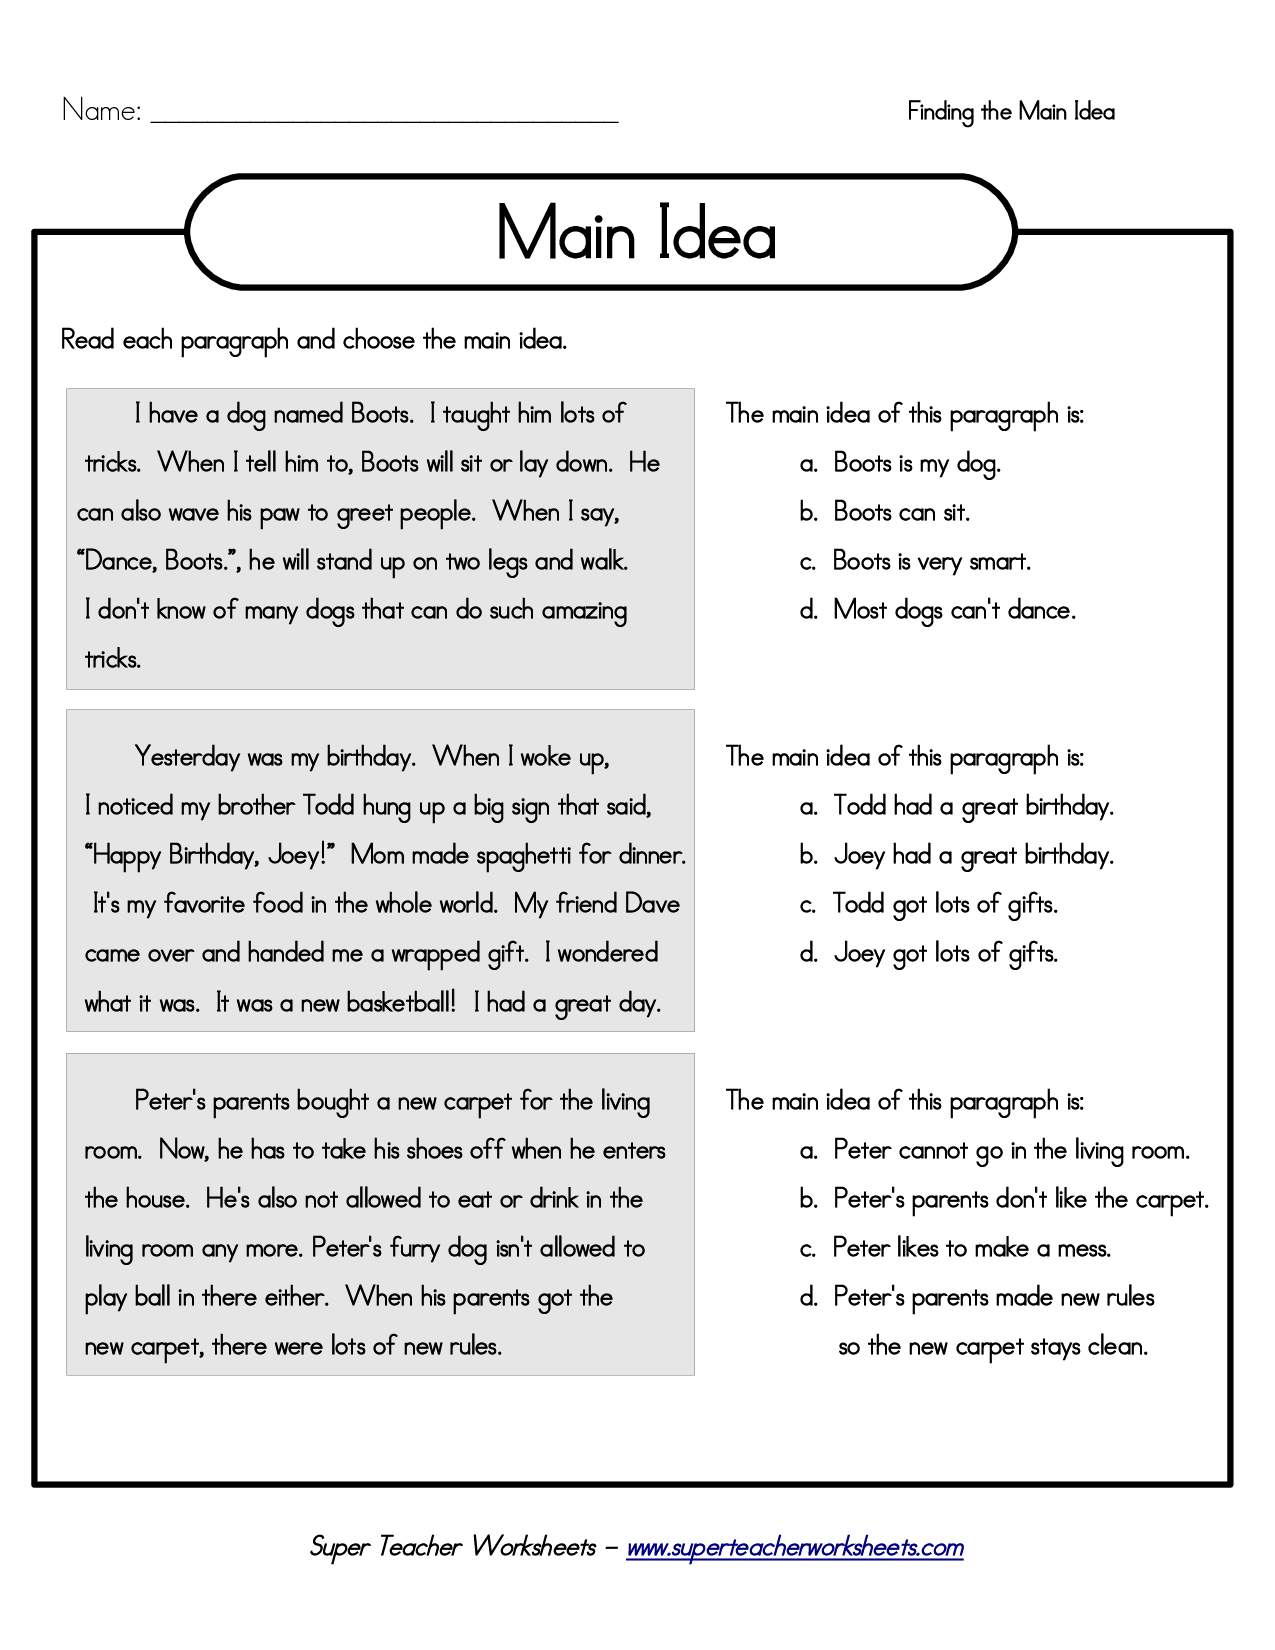 Worksheets Main Idea And Supporting Details Worksheets super teacher worksheets main idea and details details